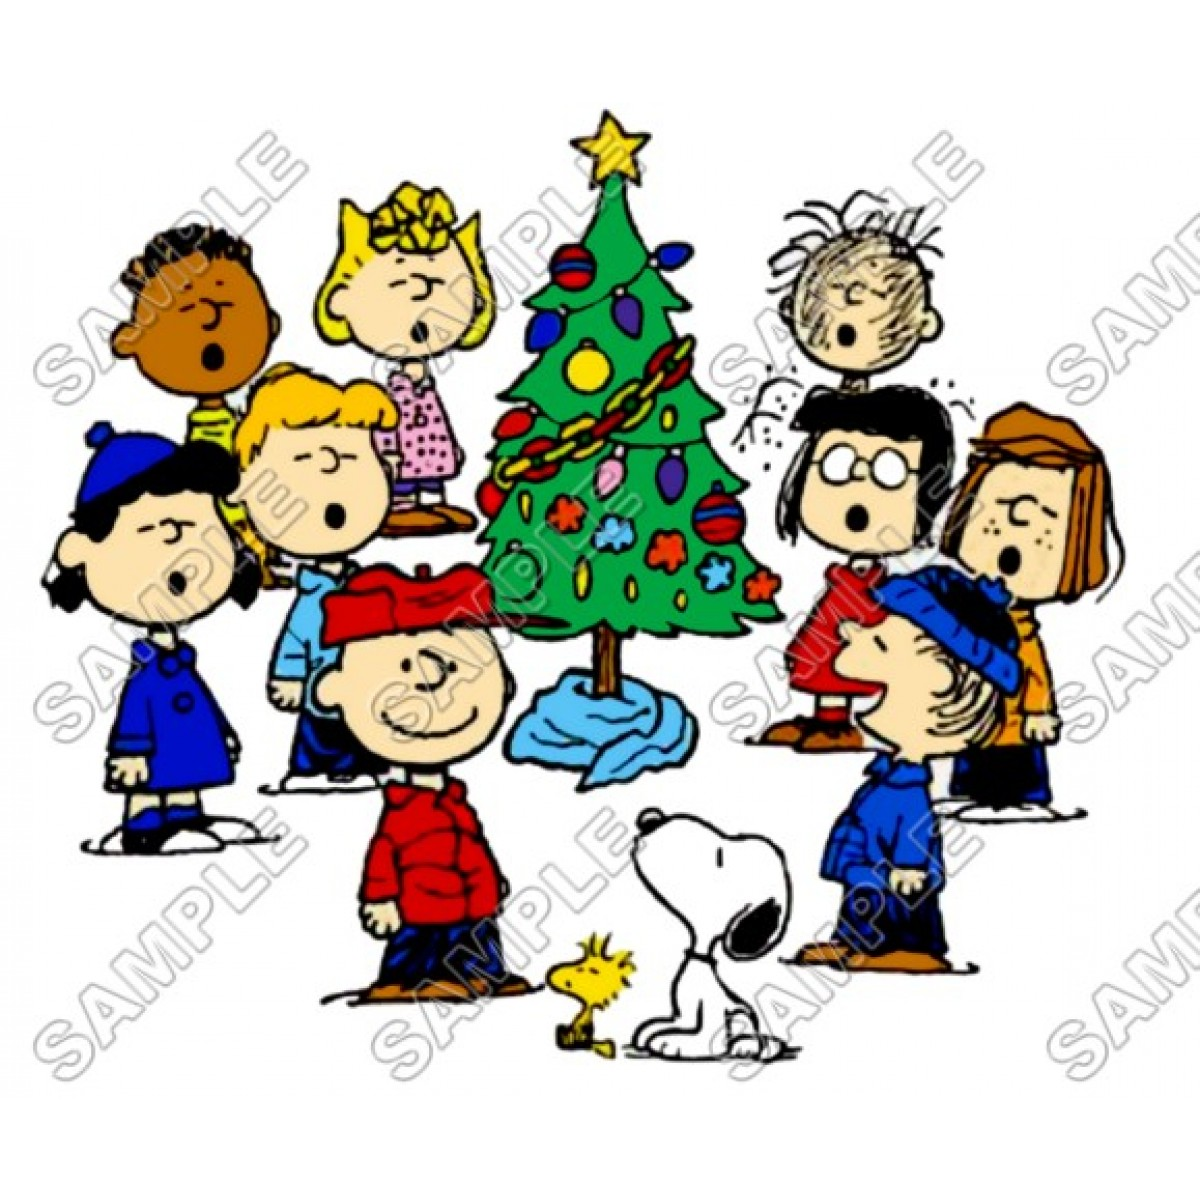 Christmas clipart free peanuts svg library download Snoopy Christmas Images | Free download best Snoopy Christmas Images ... svg library download